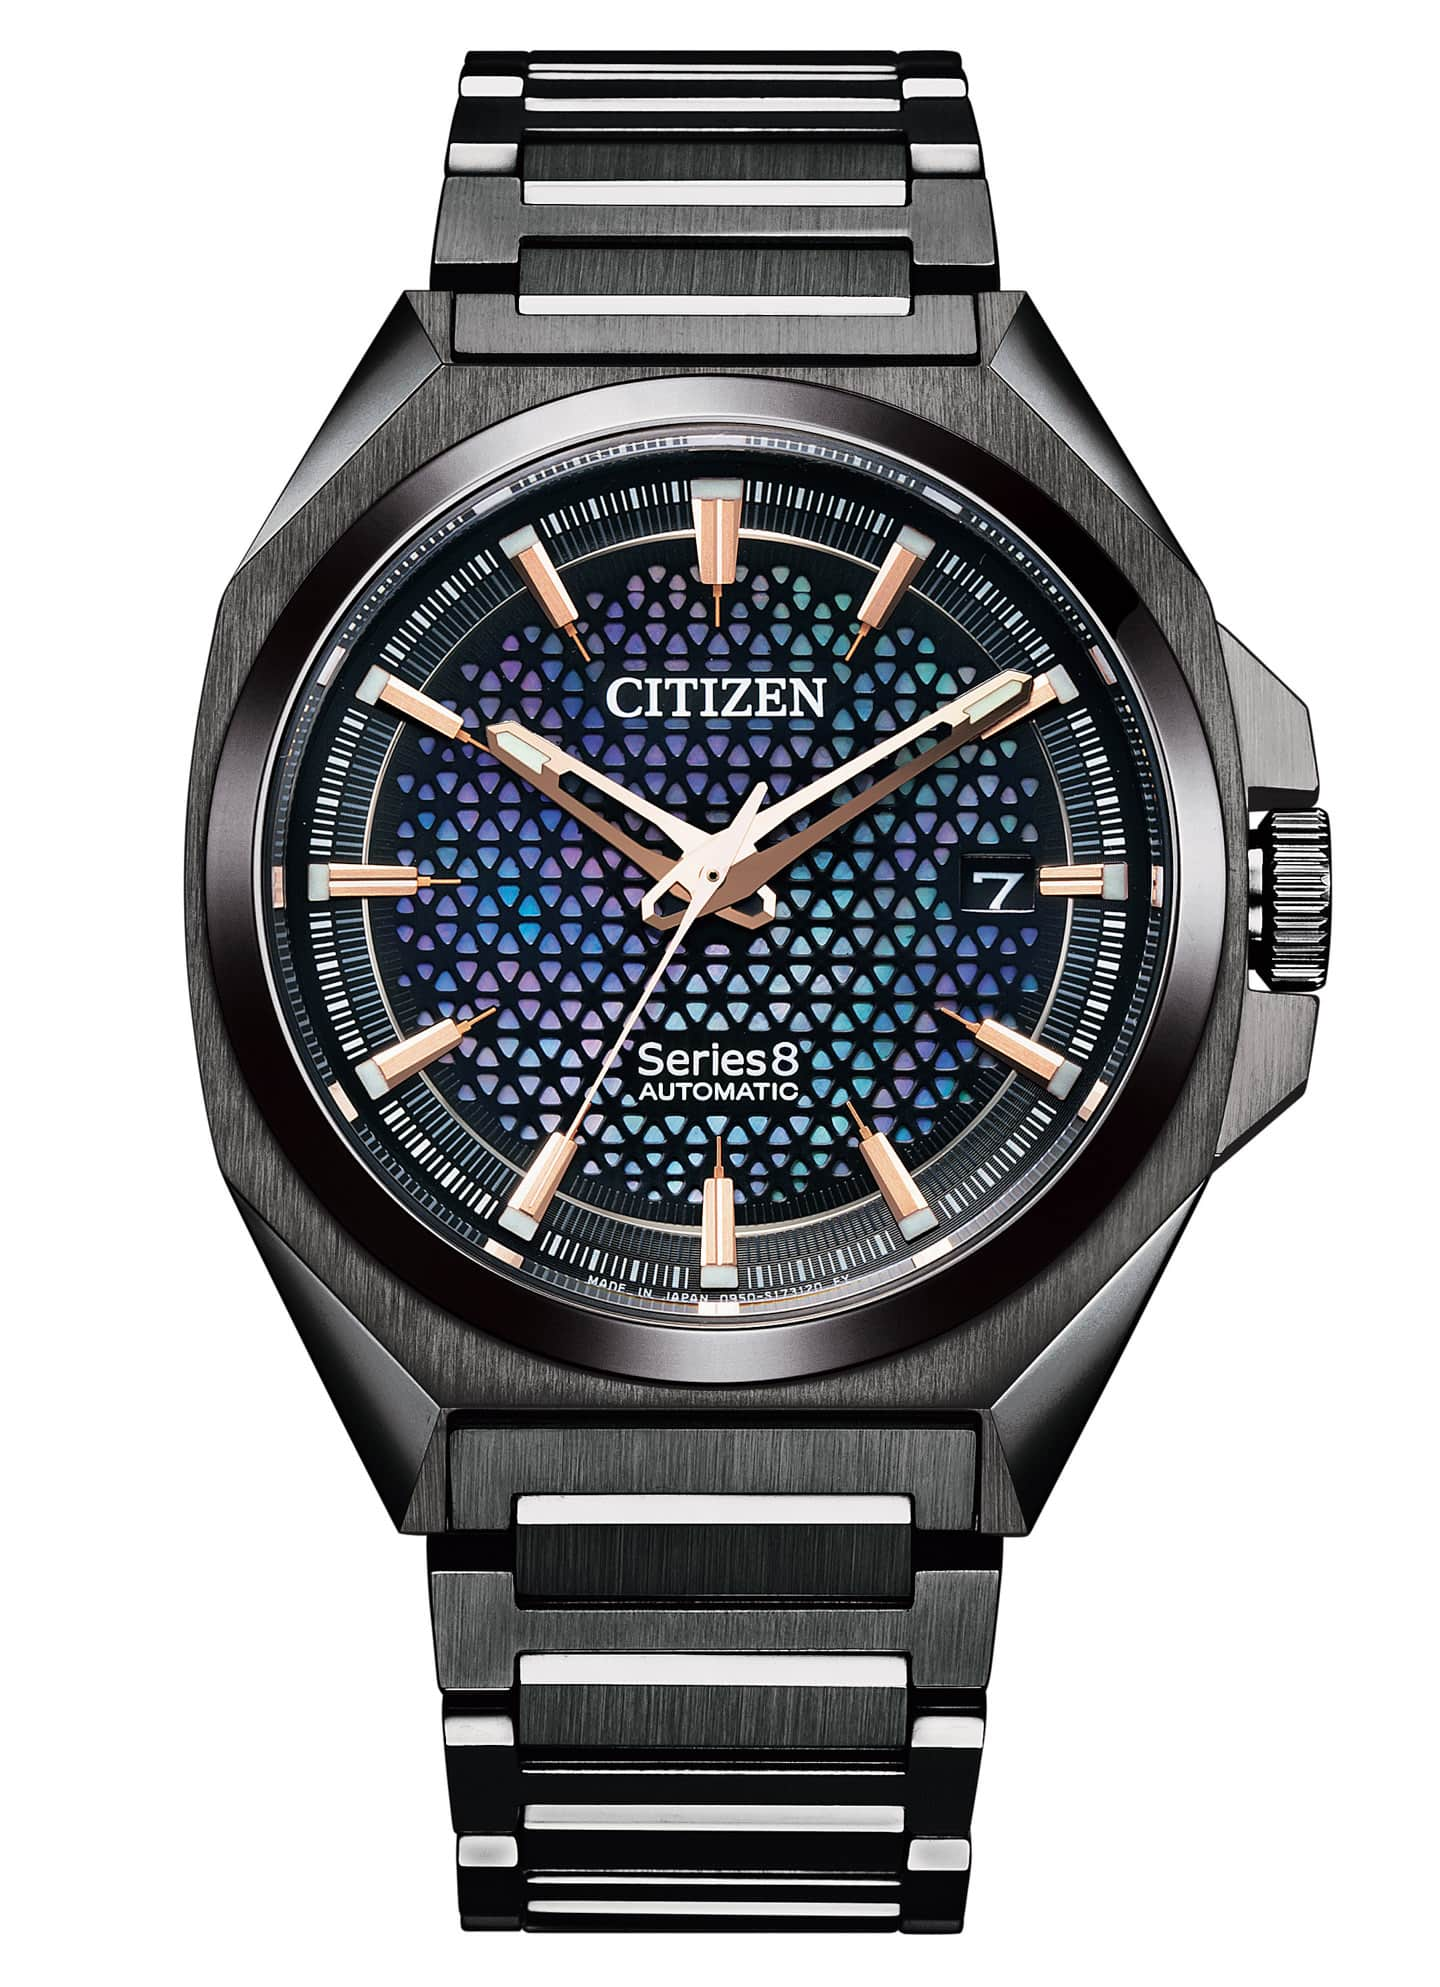 Citizen Series 8 Automatic watches 5 min